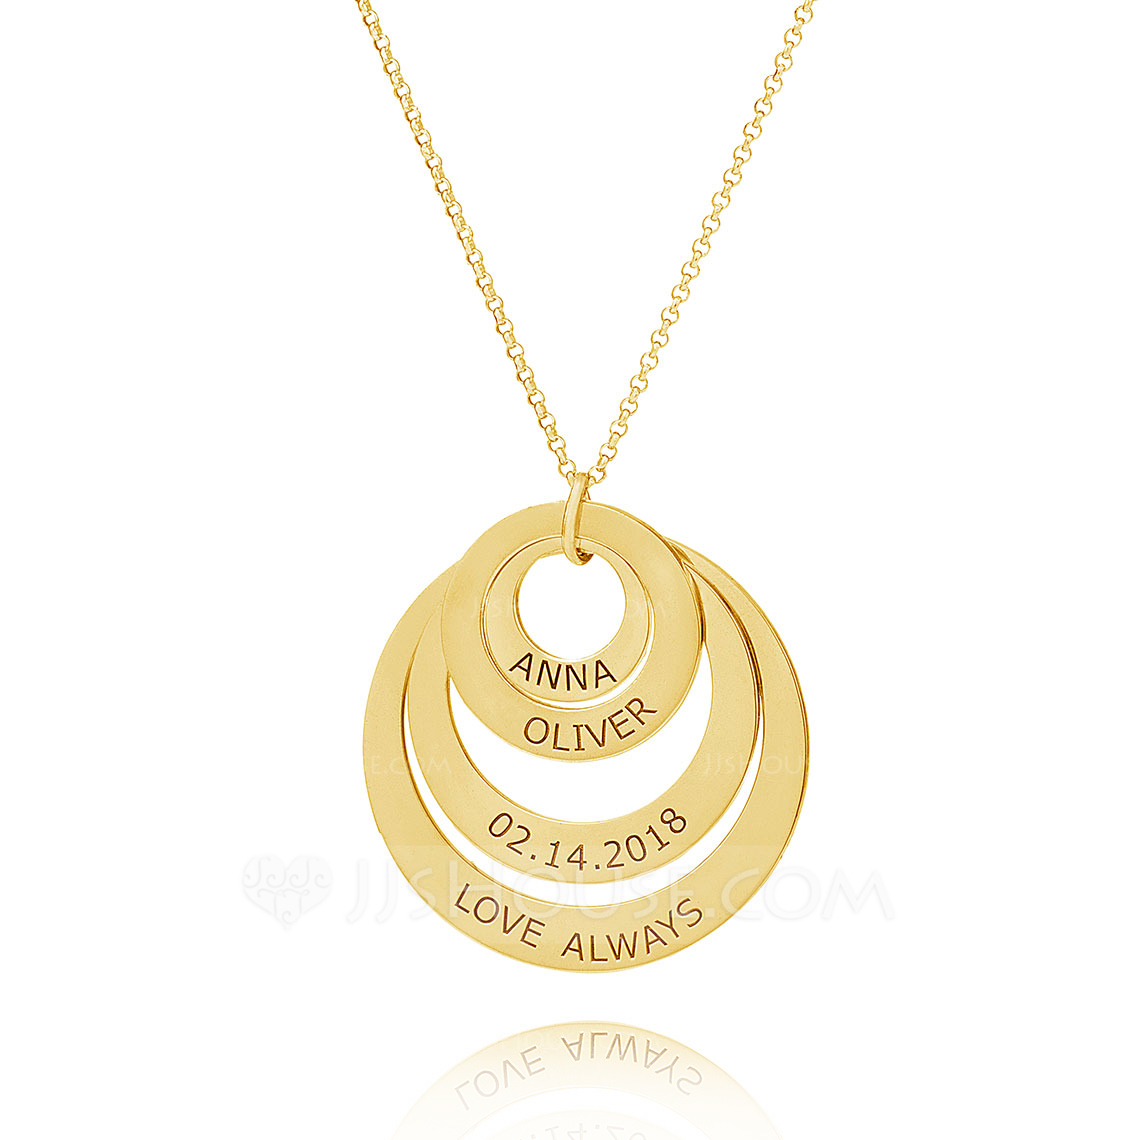 Custom 18k Gold Plated Four Engraved Necklace Family Necklace Circle Necklace With Kids Names - Birthday Gifts Mother's Day Gifts